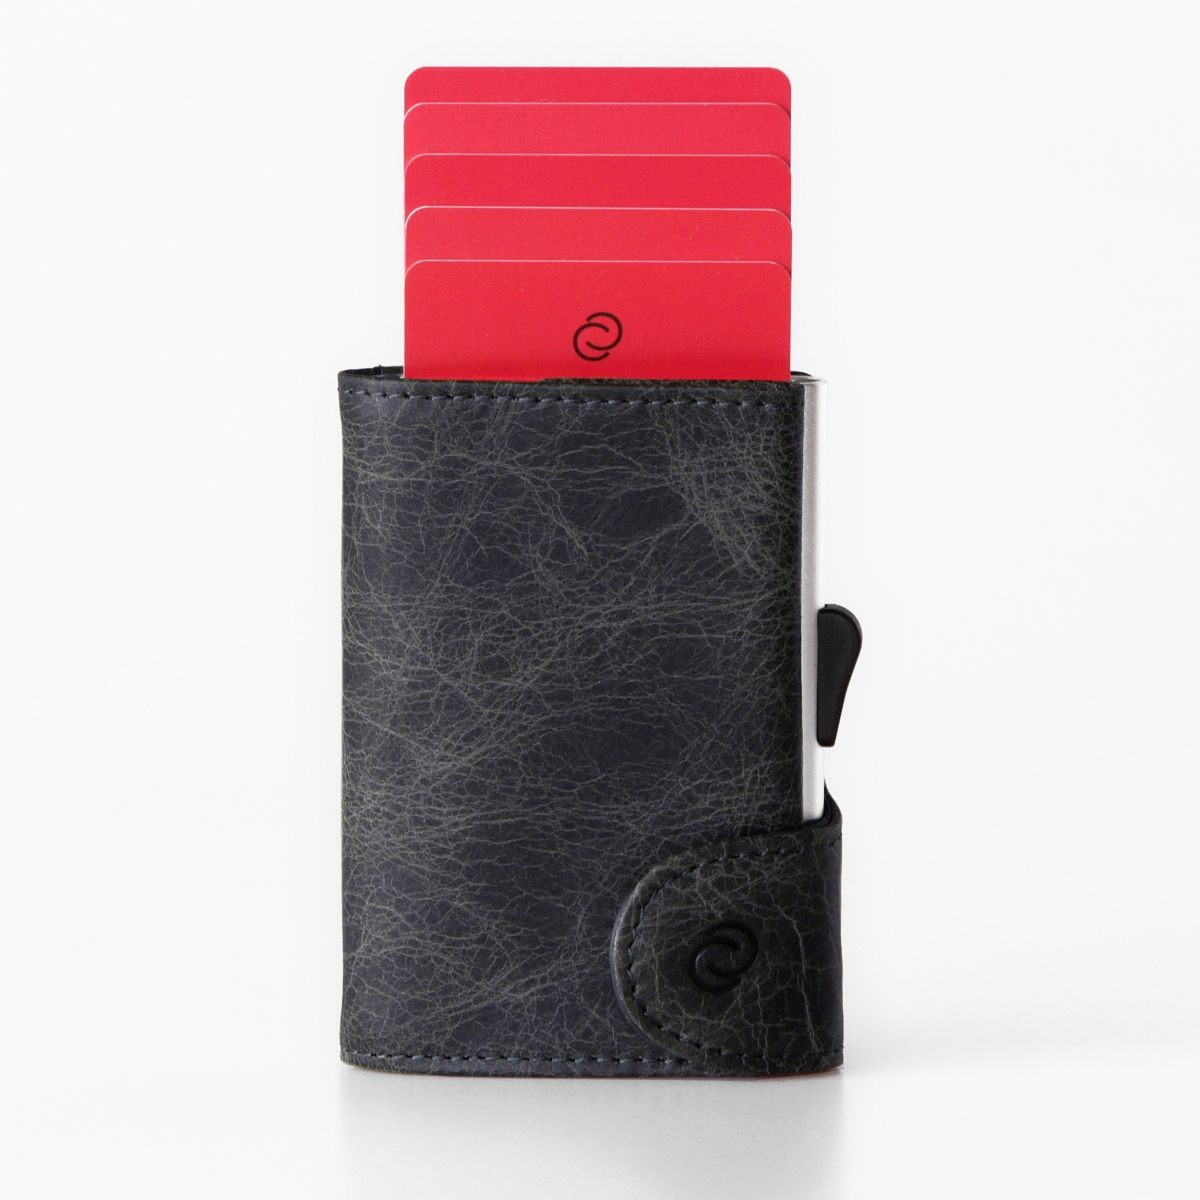 Aluminum Card Holder with Genuine Leather and Coin Pouch - Blackwood